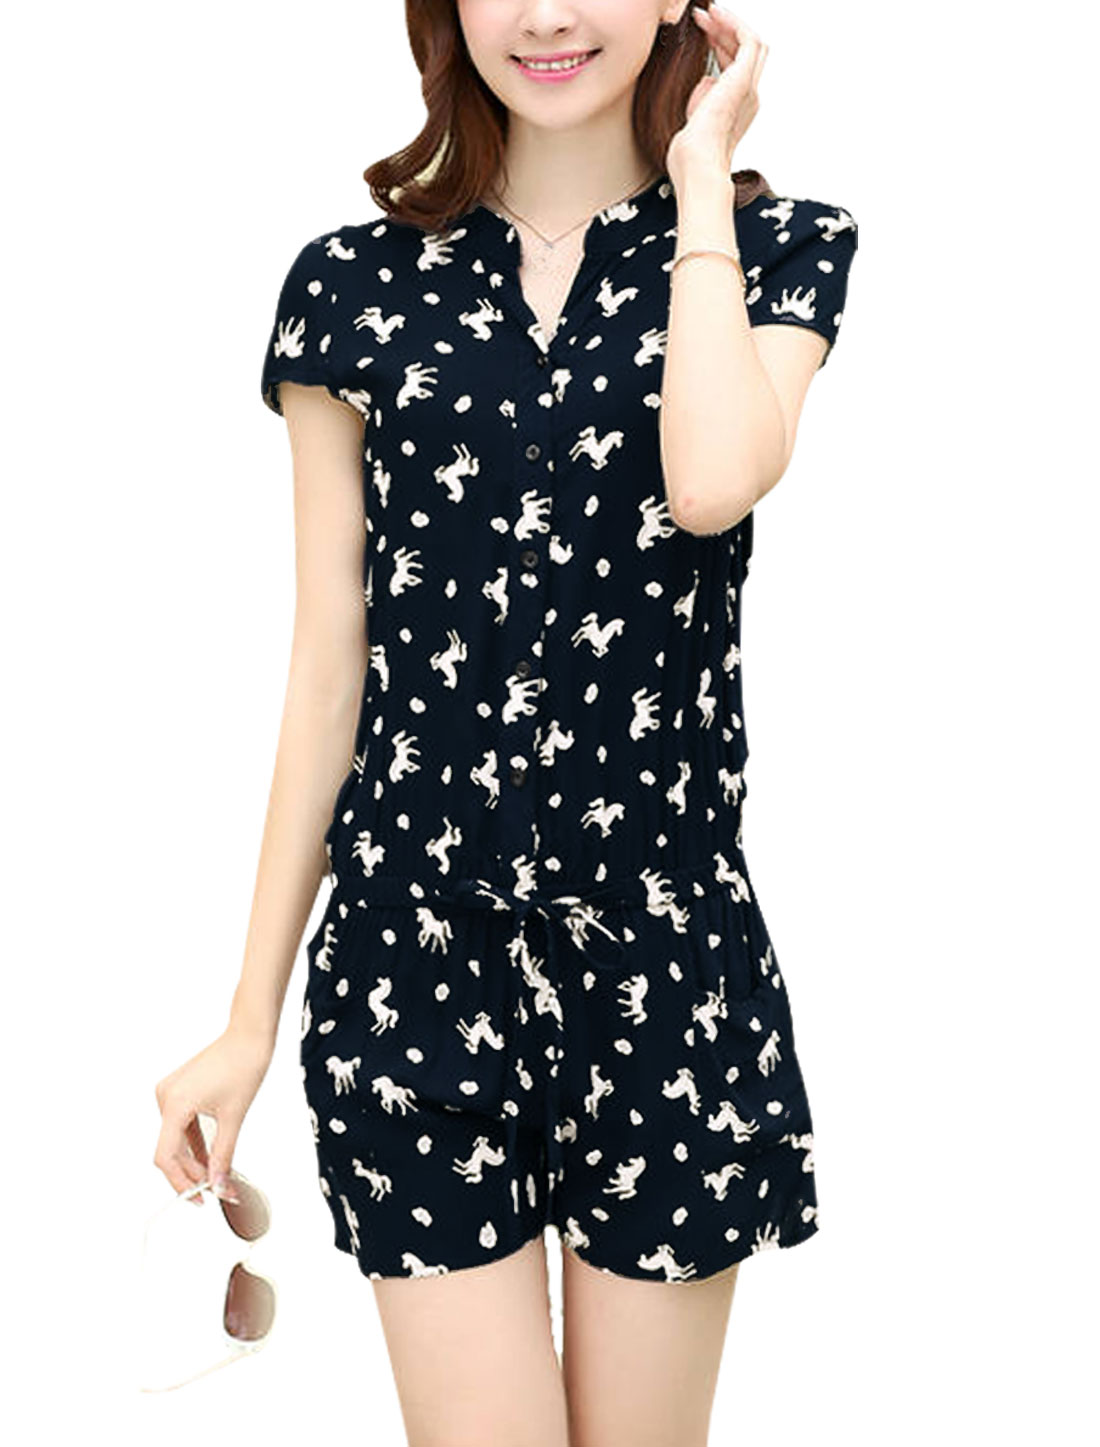 Lady Single Breasted Cap Sleeve Drawstring Waist Horse Prints Romper Navy Blue S